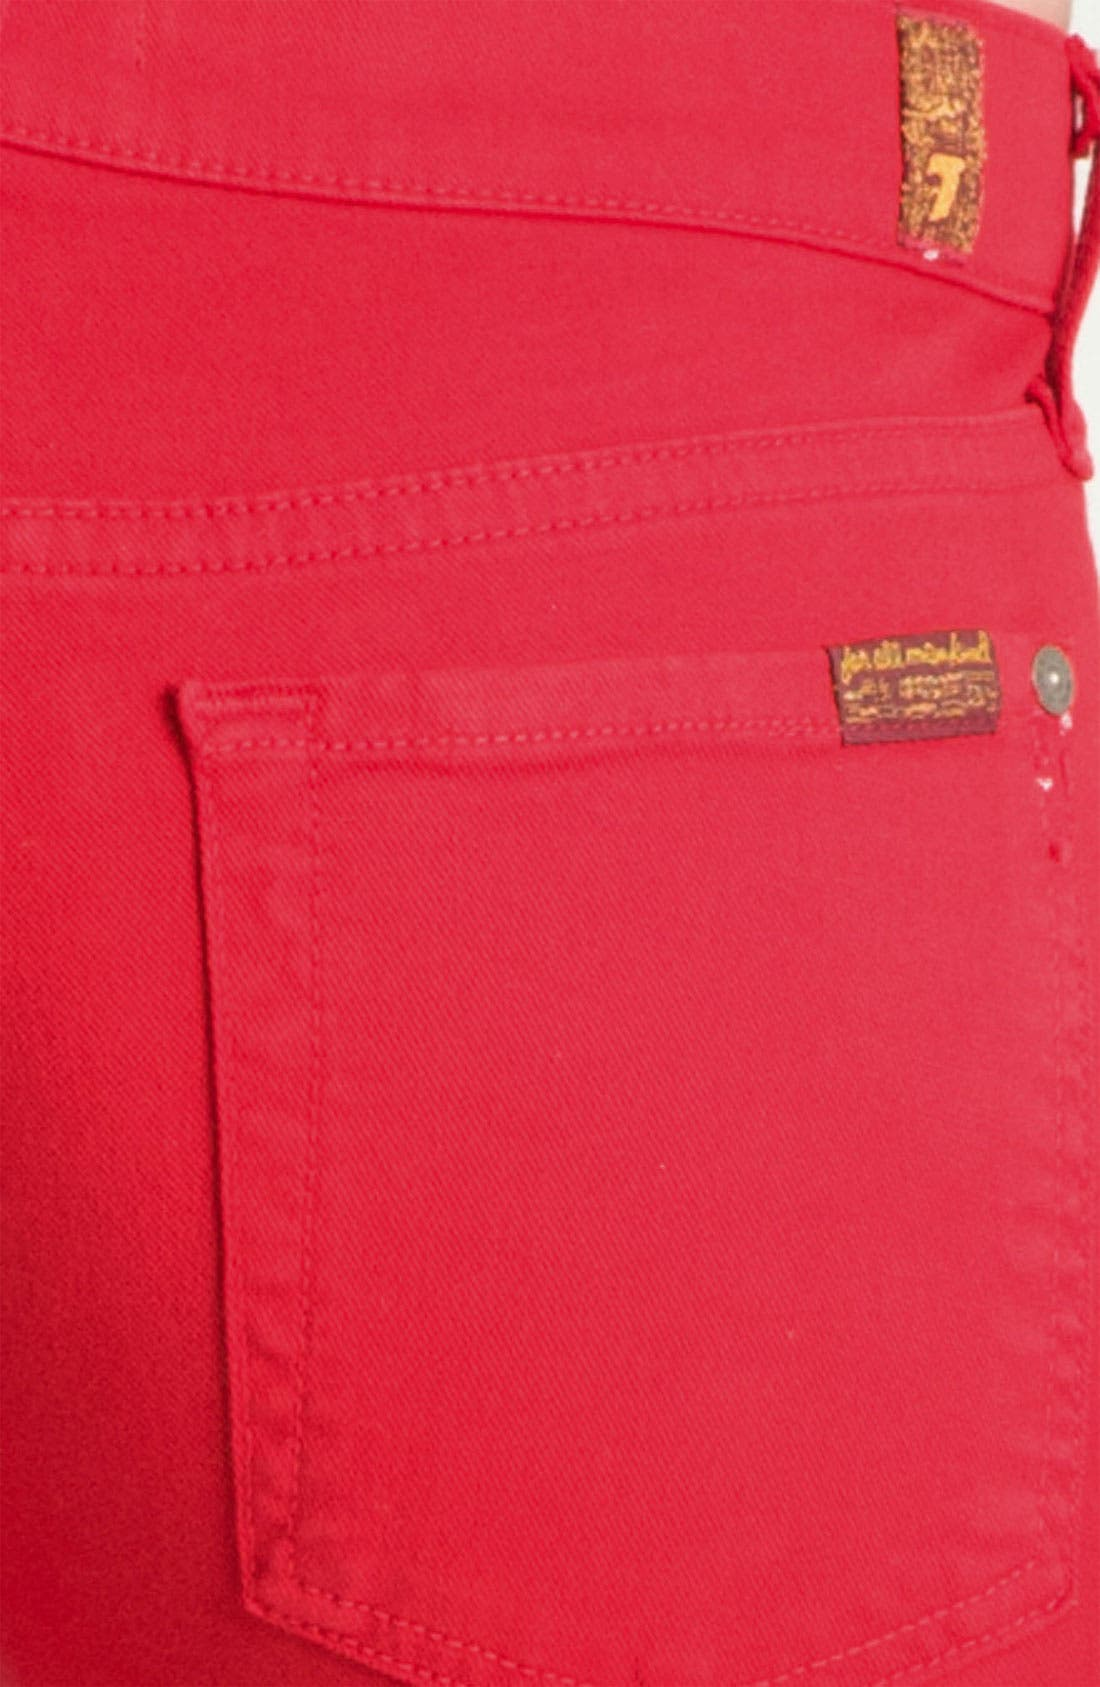 Alternate Image 3  - 7 For All Mankind® 'The Skinny' Overdyed Jeans (Red Apple)